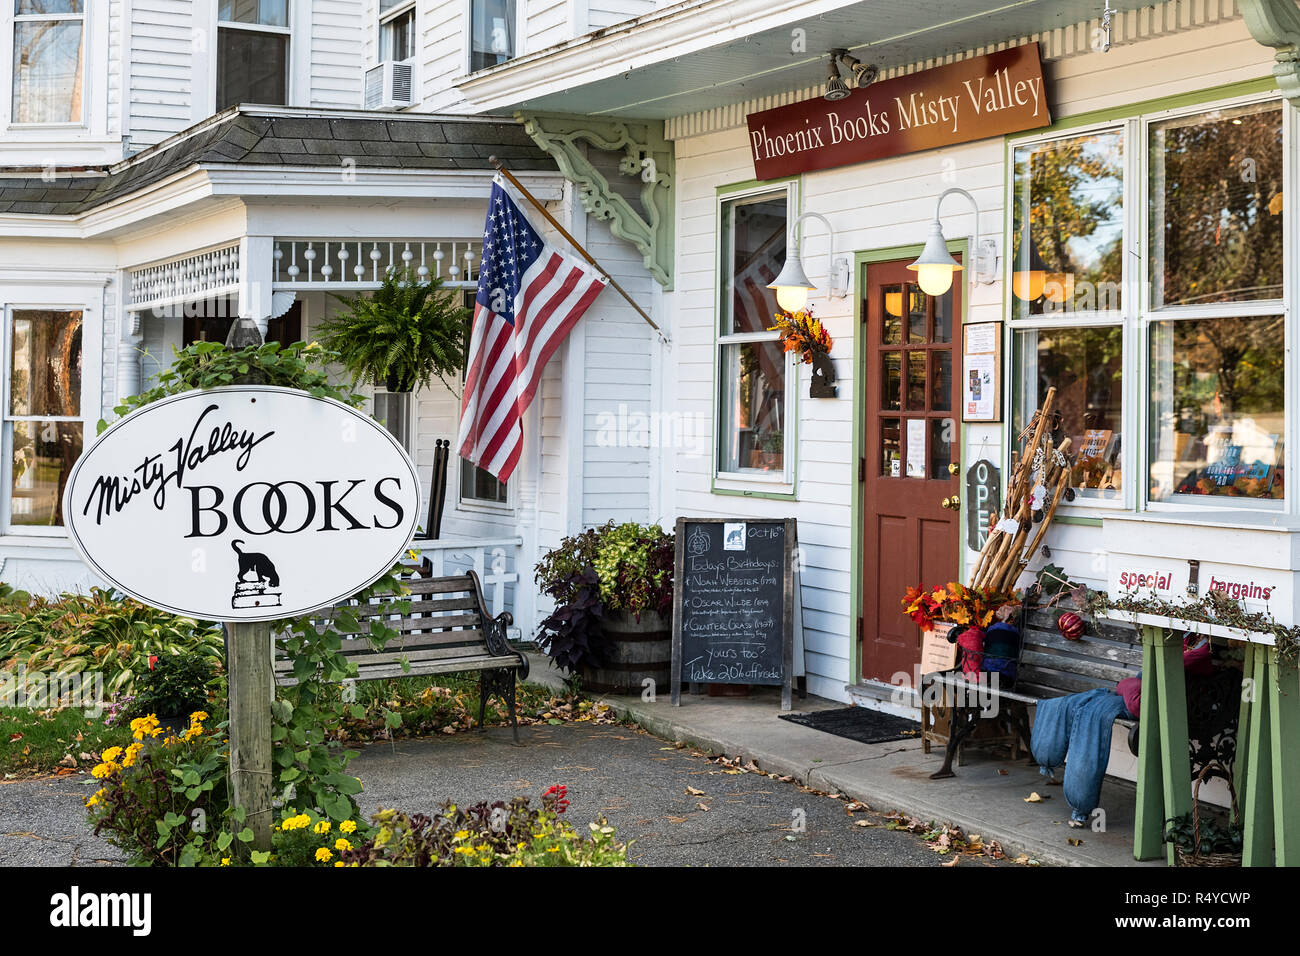 Charming bookstore, Chester, Vermont, USA. - Stock Image